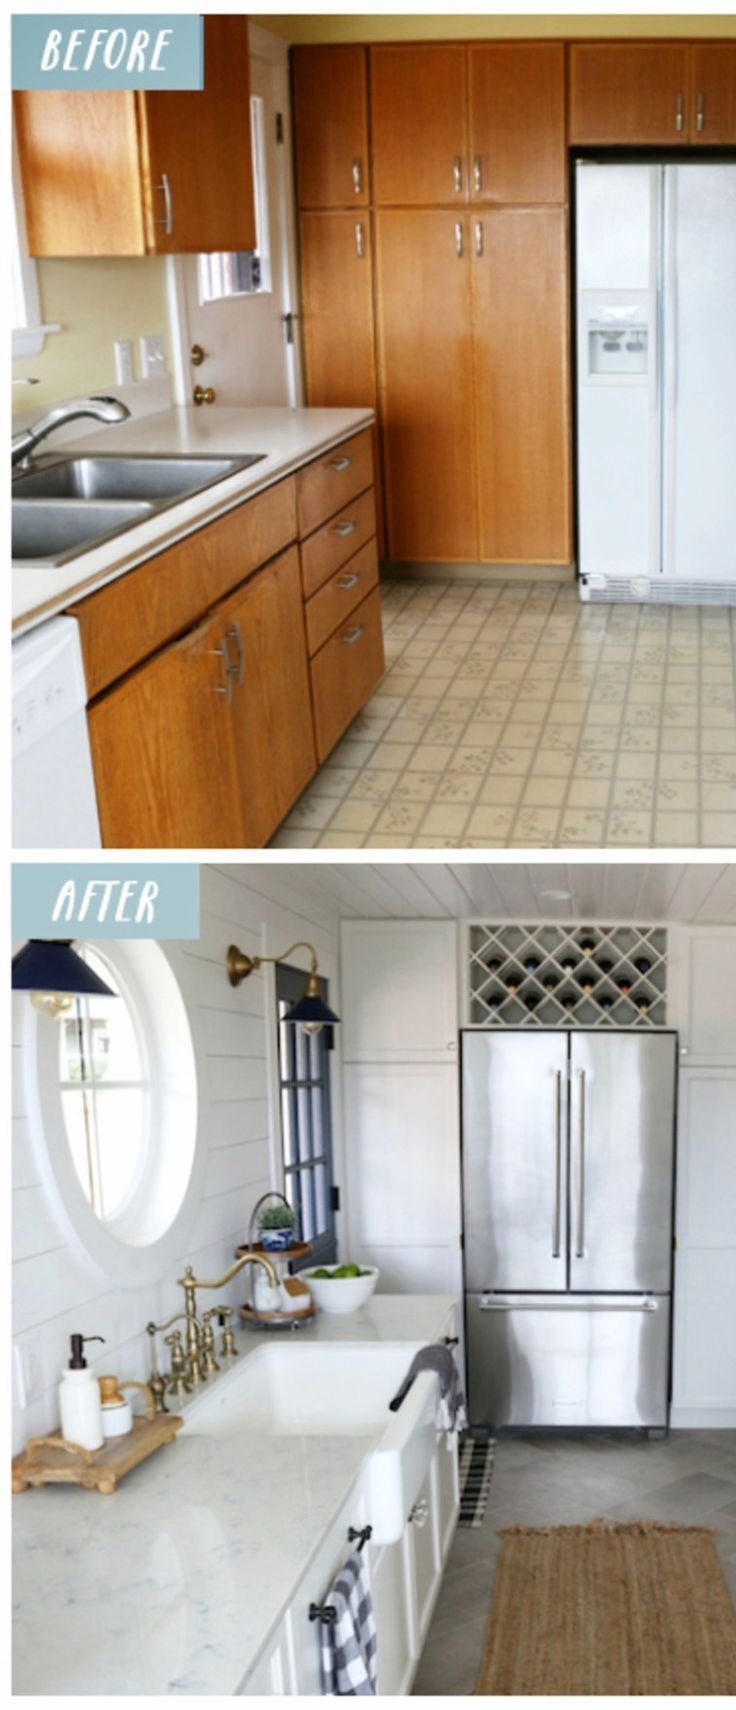 Small Kitchen Remodels Before And After Pictures To Drool Over